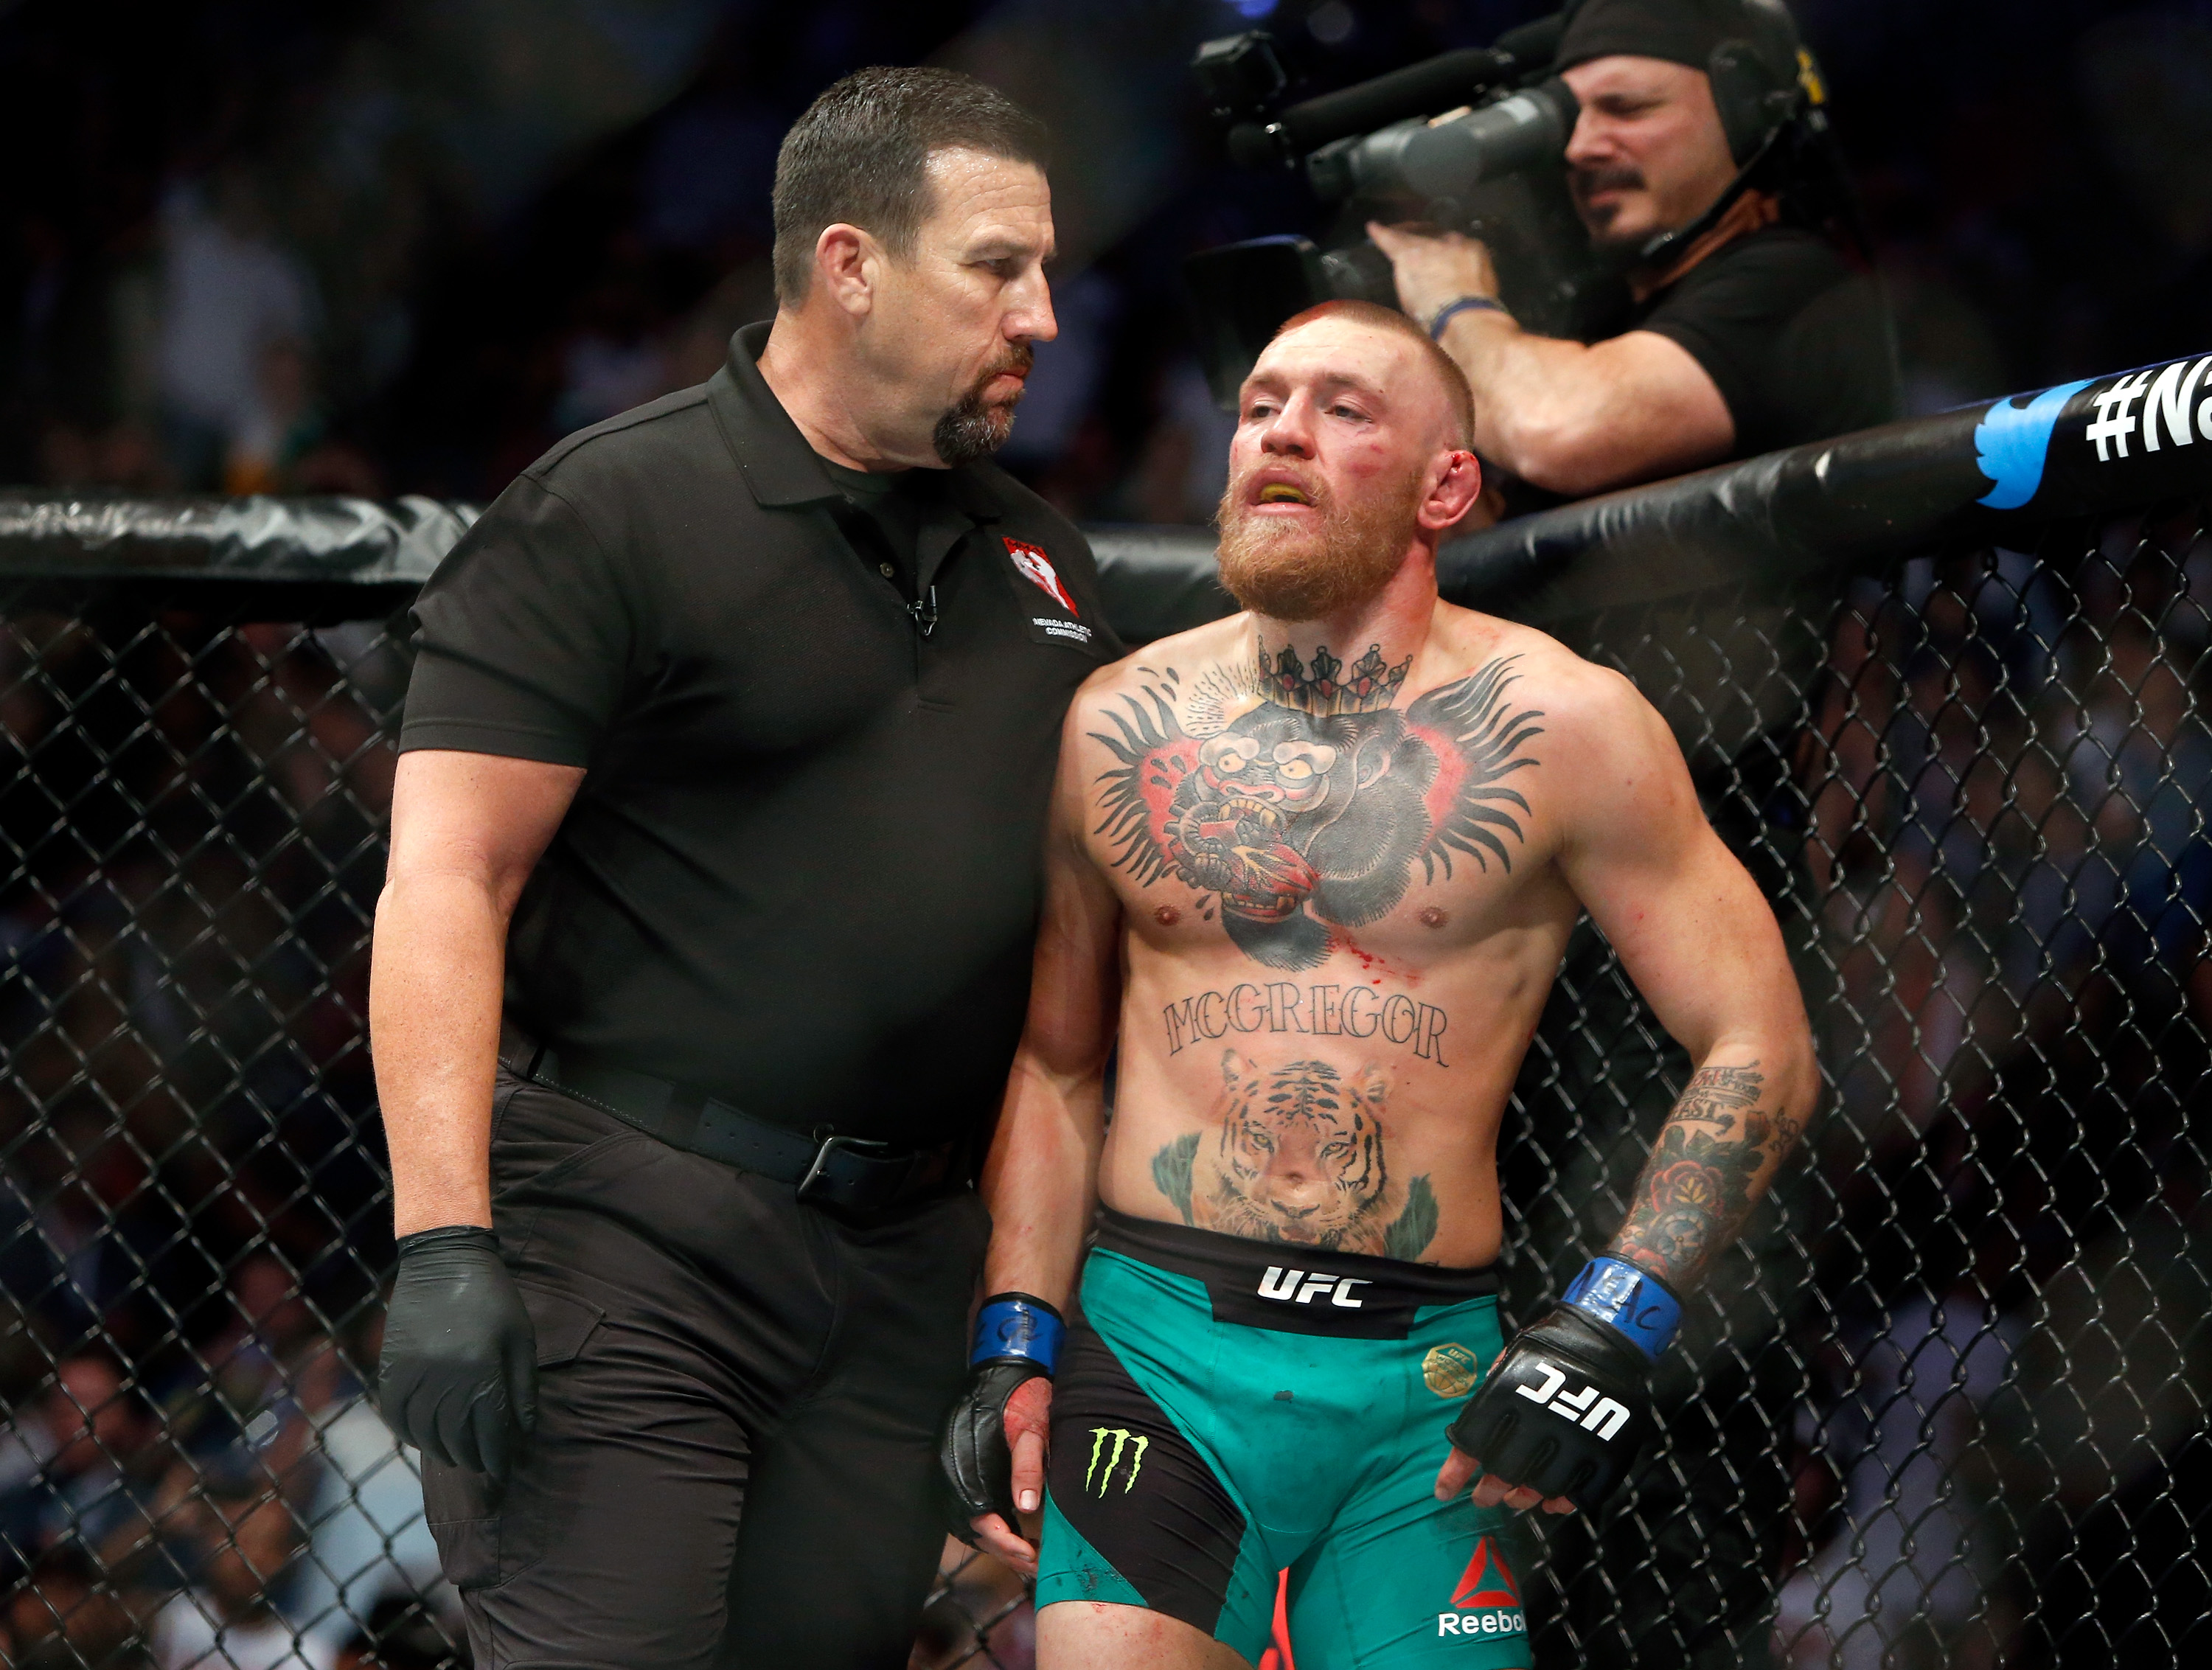 Referee John McCarthy (L) makes sure Conor McGregor goes back to his corner in 2016